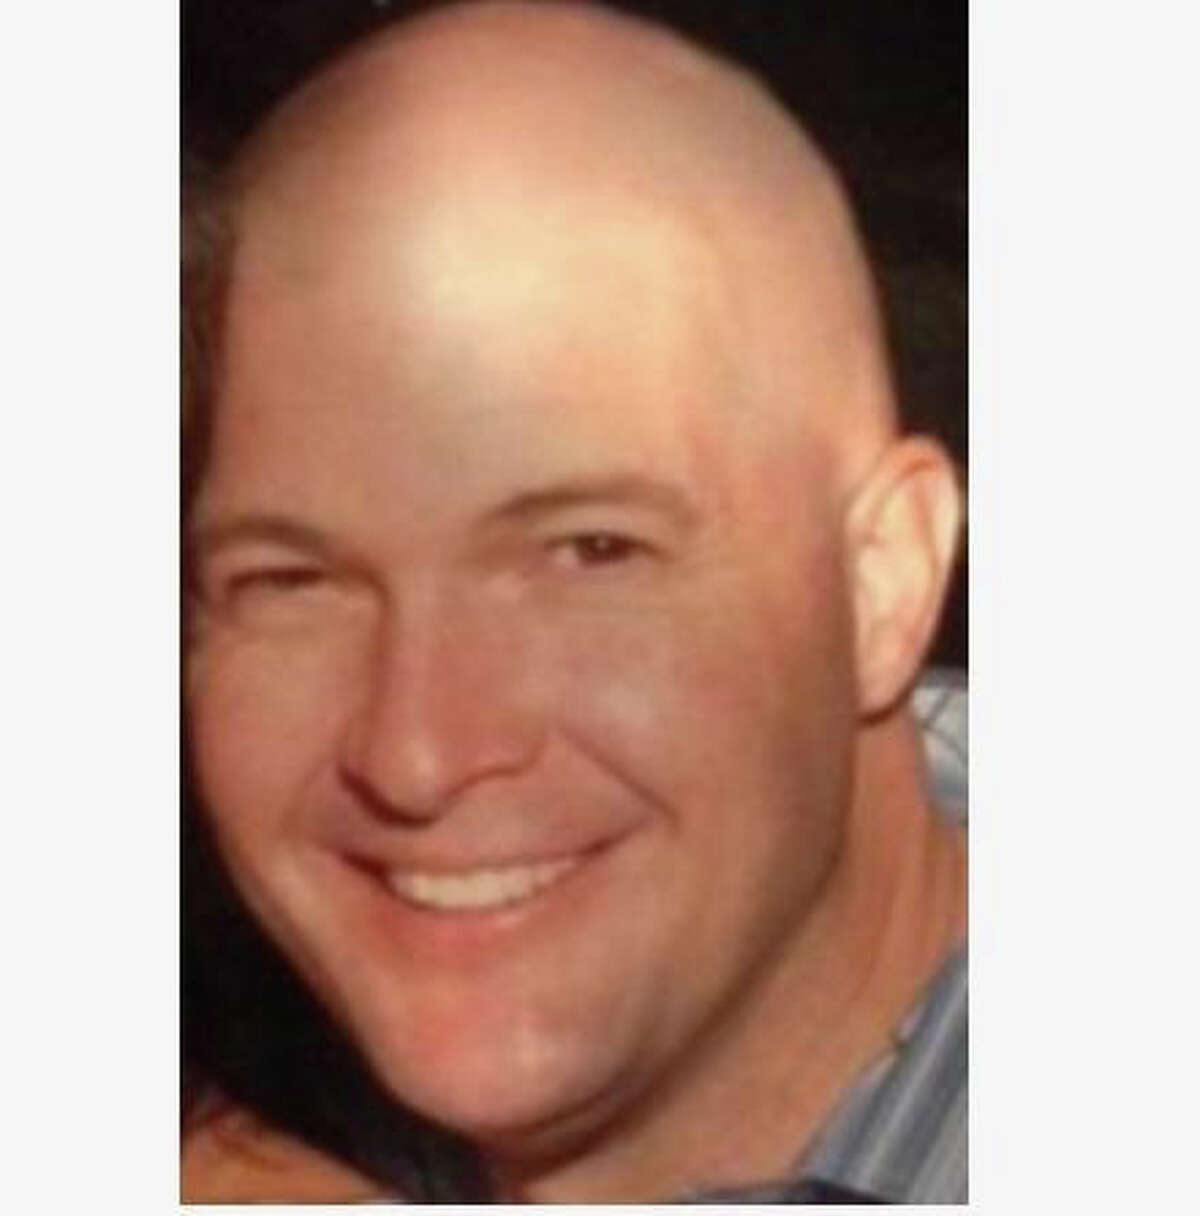 The body of David Riek was found in Ridgefield on Sunday, Sept. 9, 2012, more than a day after the 44-year-old jogger was reported missing.